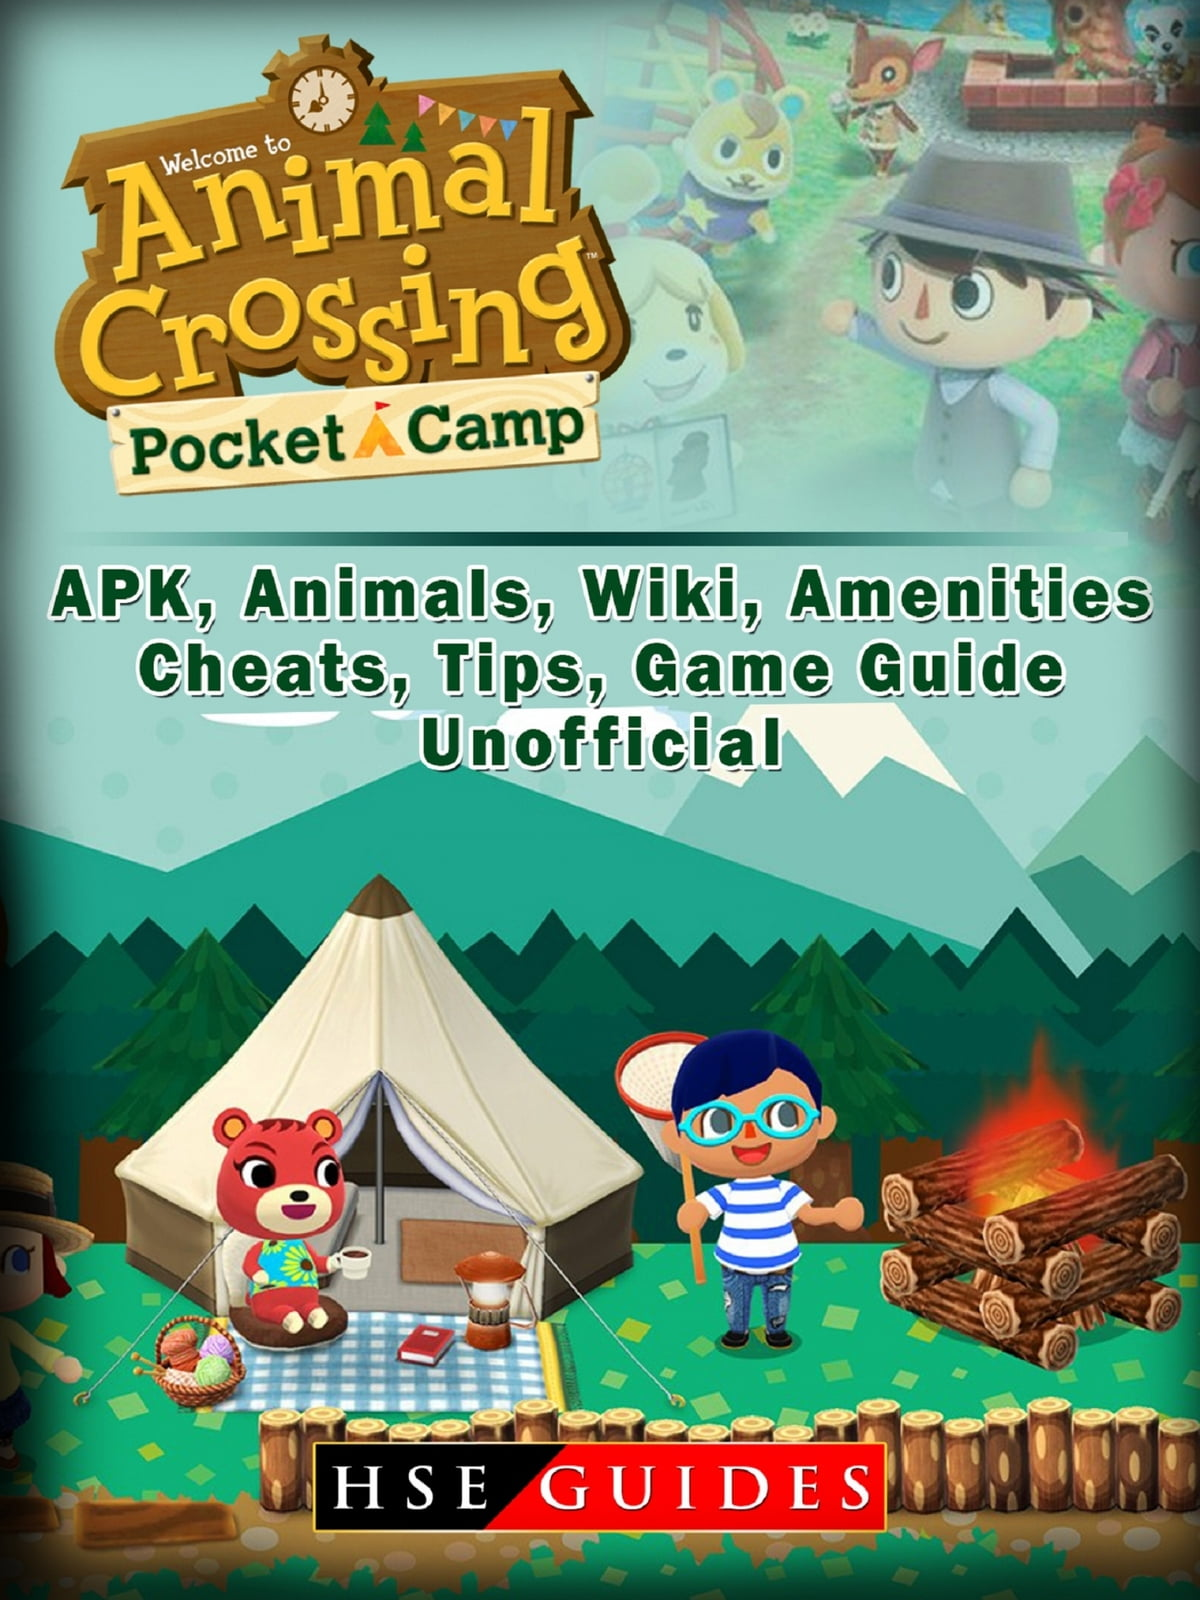 Animal Crossing Pocket Camp APK, Animals, Wiki, Amenities, Cheats, Tips,  Game Guide Unofficial ebook by HSE Guides - Rakuten Kobo